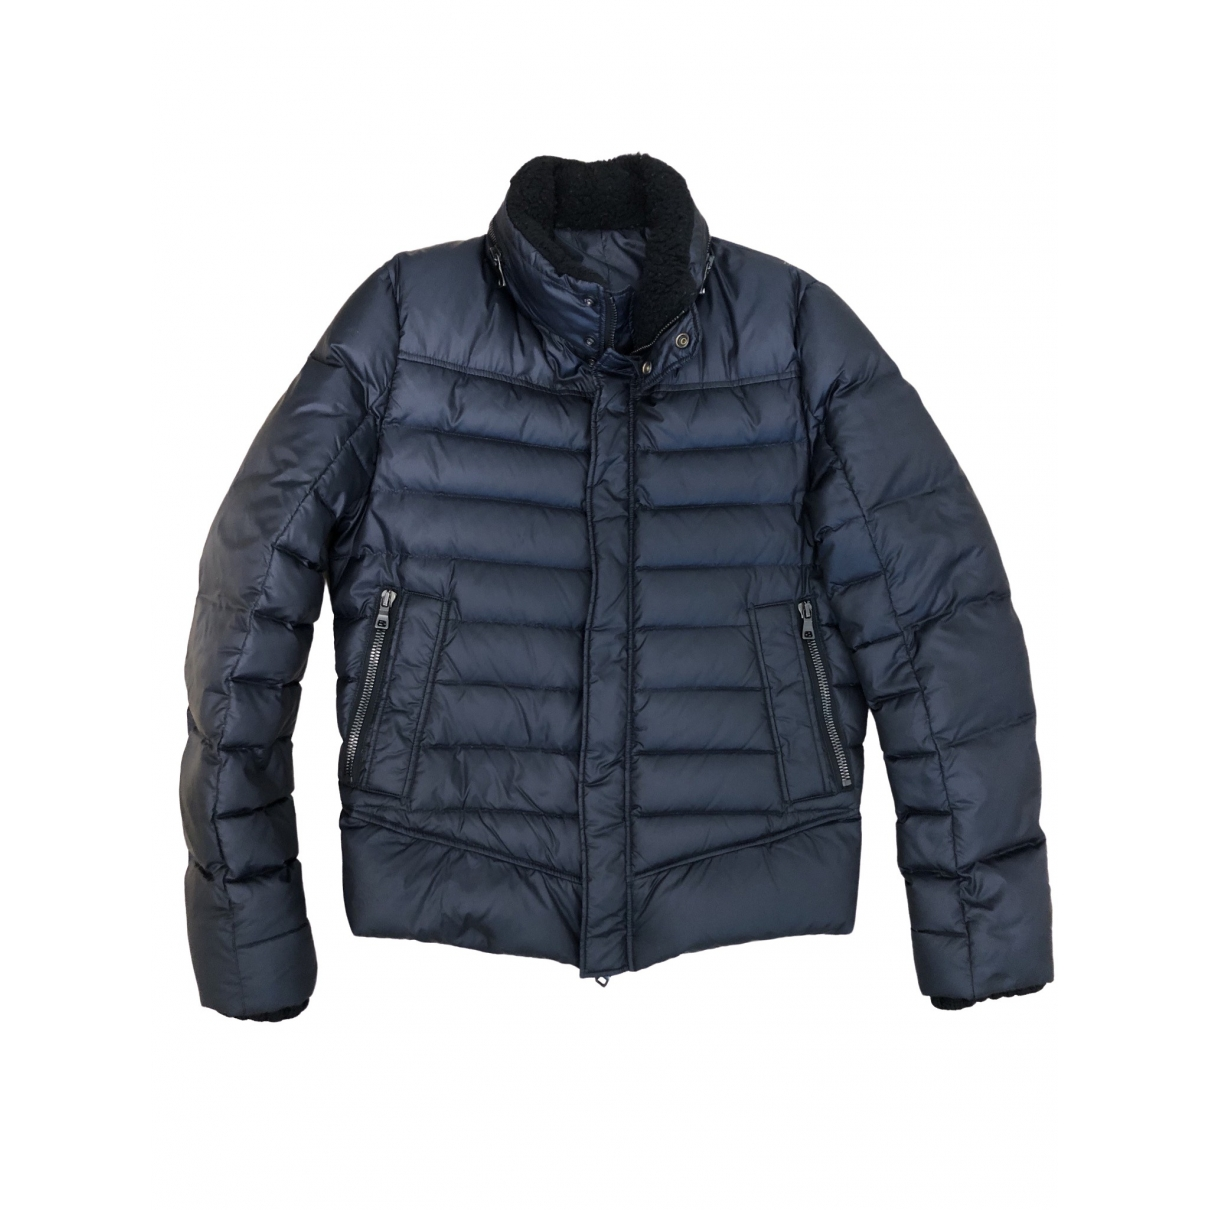 Balmain \N Navy jacket  for Men 48 IT